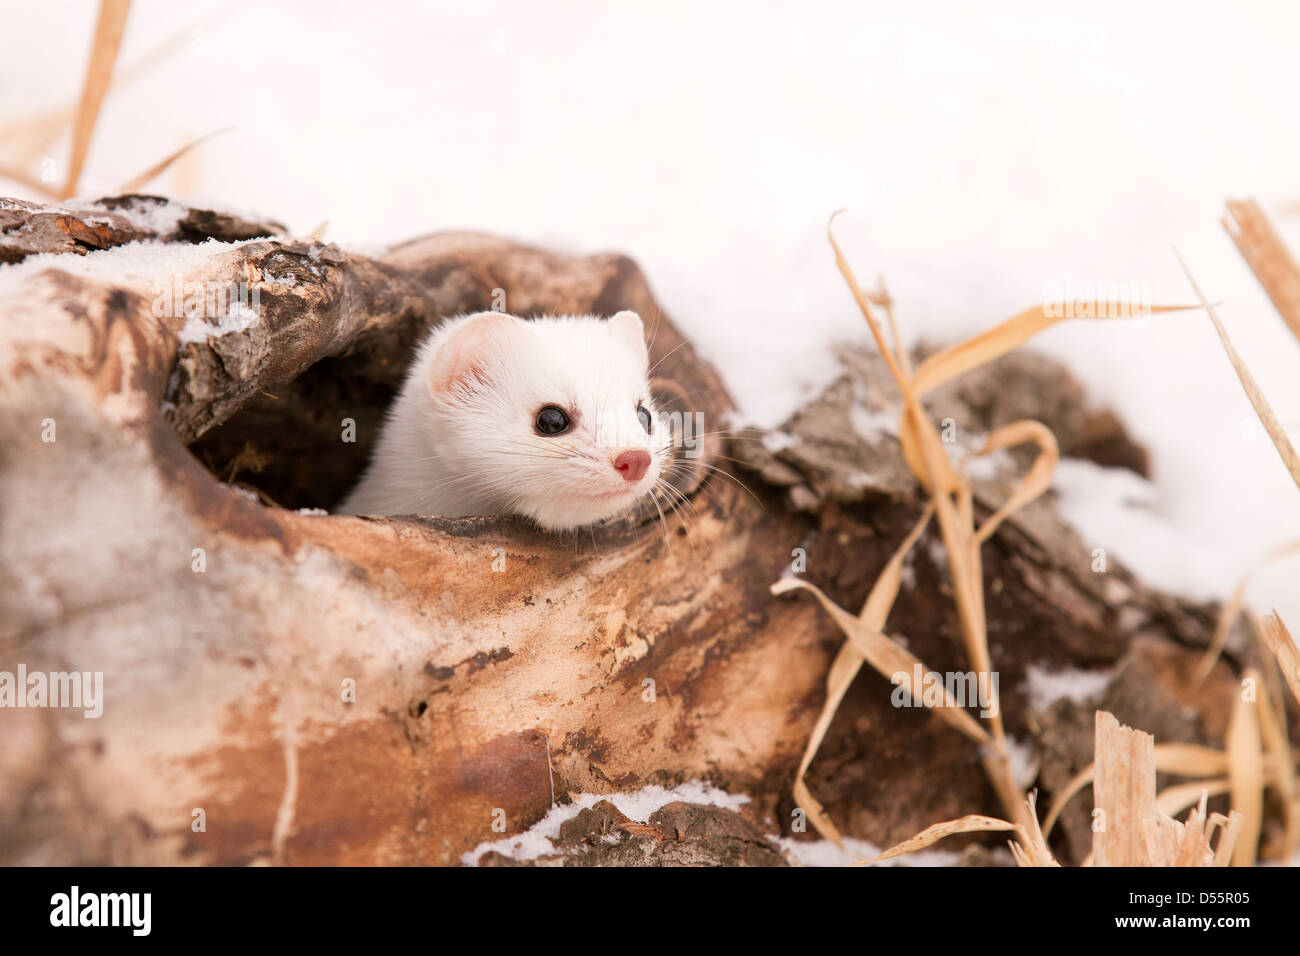 Short tailed Weasel, Mustela erminea in a hollow log - Stock Image